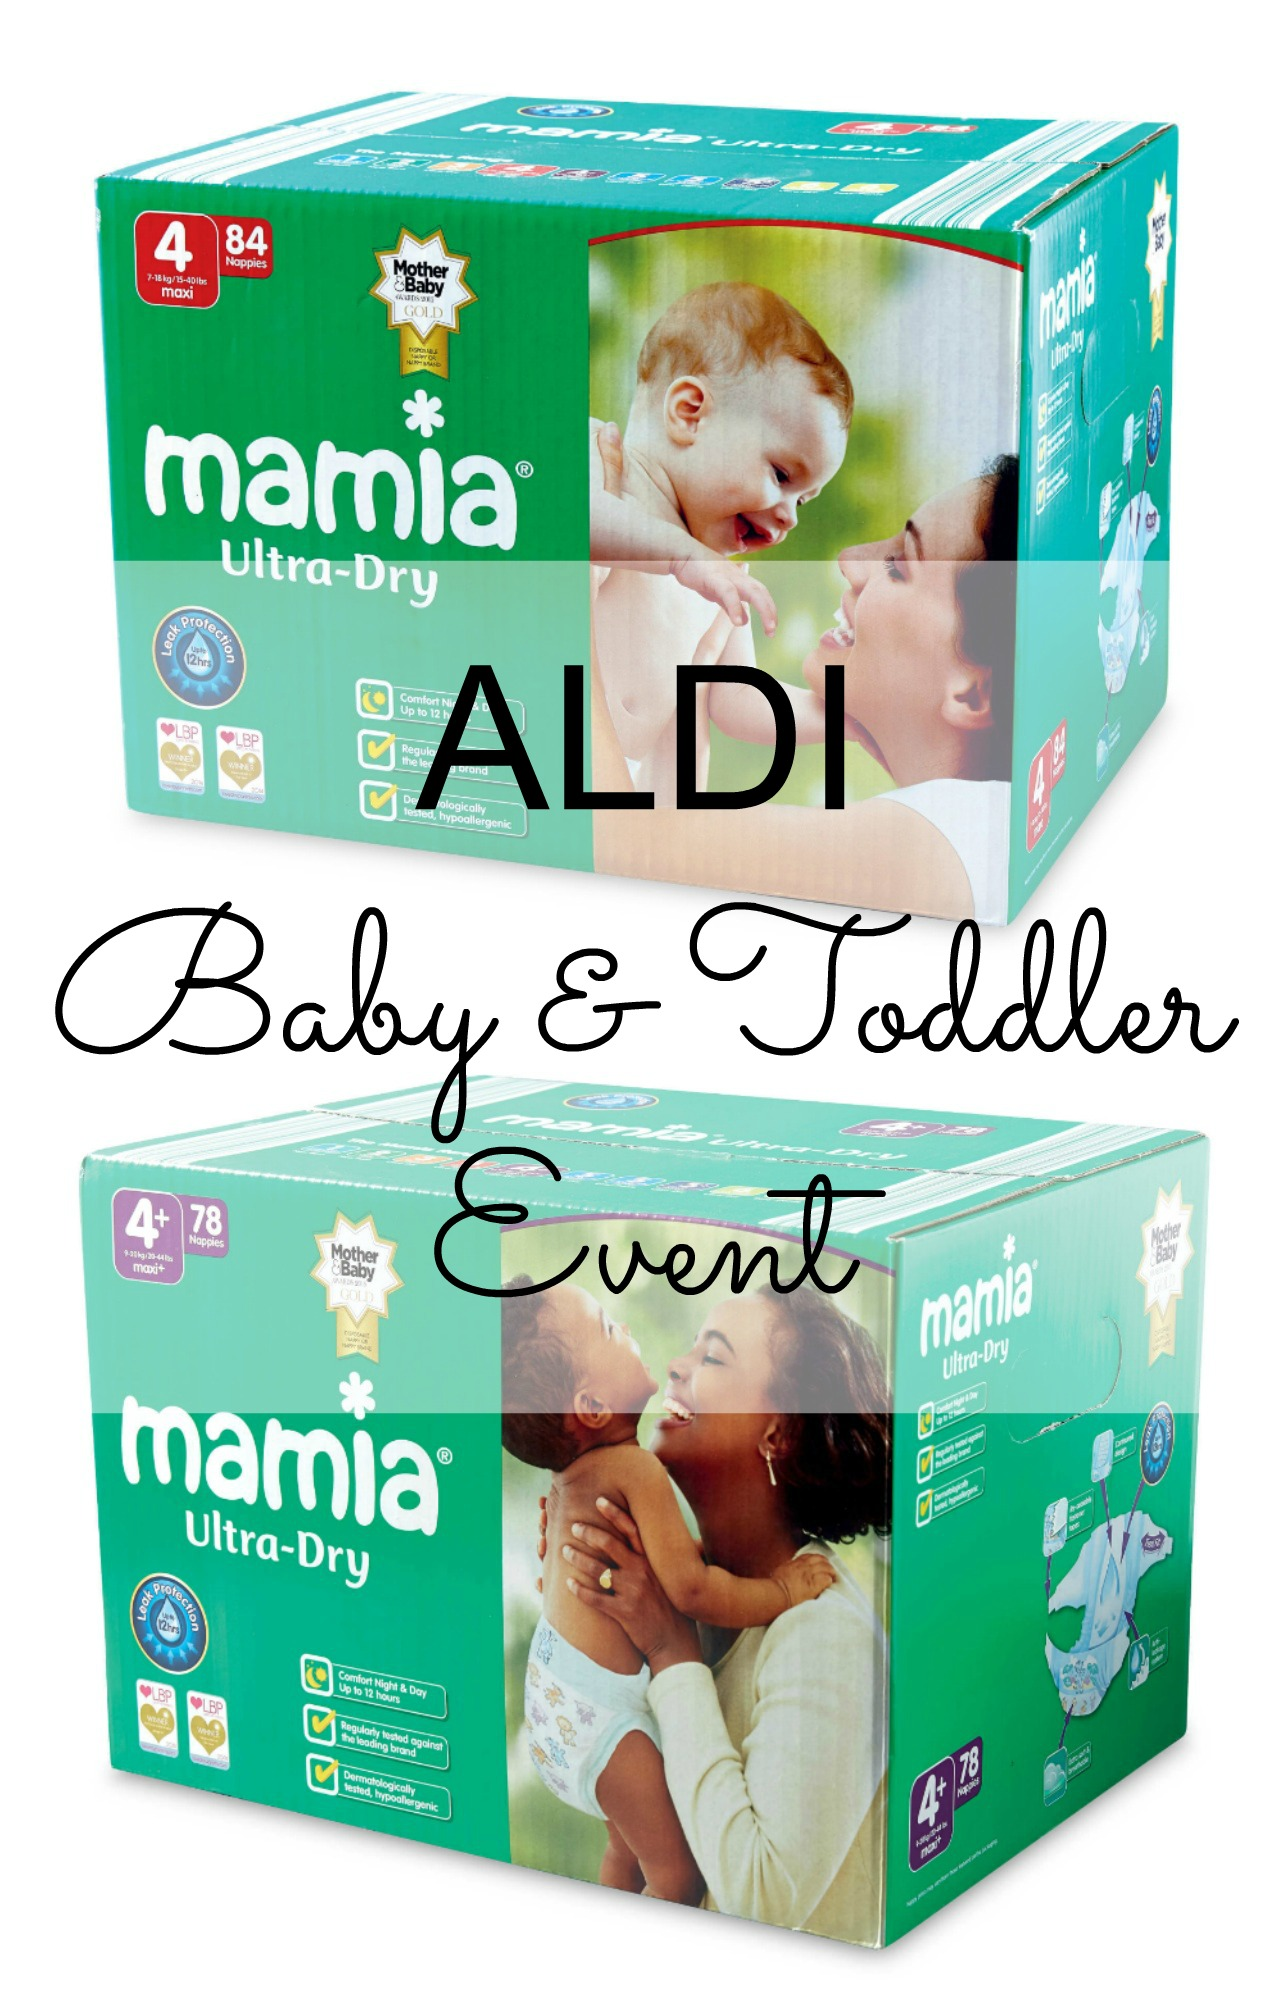 aldi baby & toddler event pin